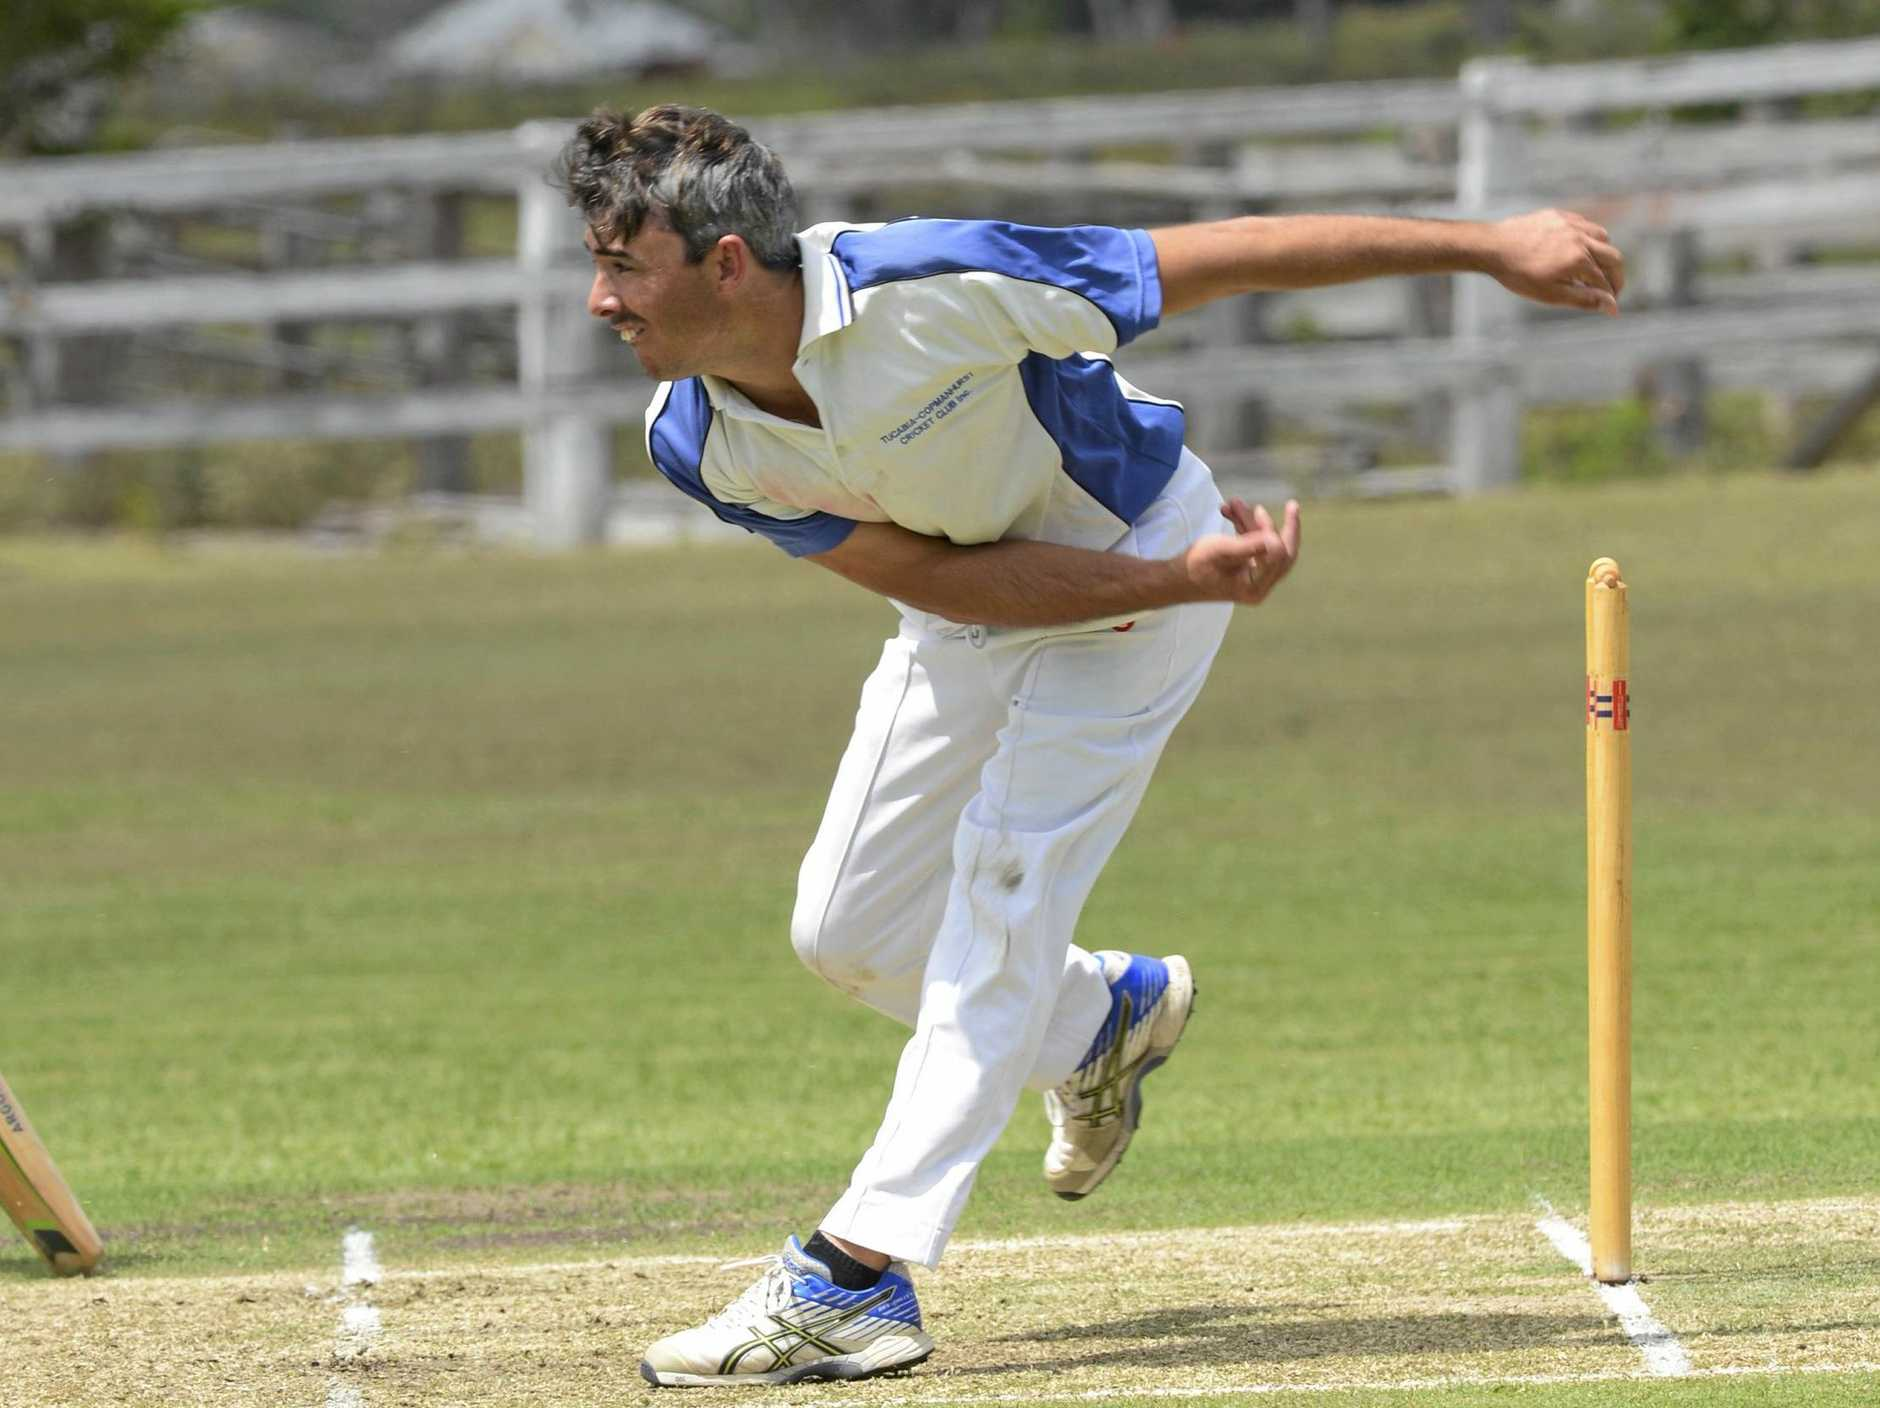 Tucabia bowler Billy Blanch during the CRCA Premier League cricket match between Coutts Crossing and Tucabia at Small Park, Ulmarra on Saturday, 25th February, 2017.